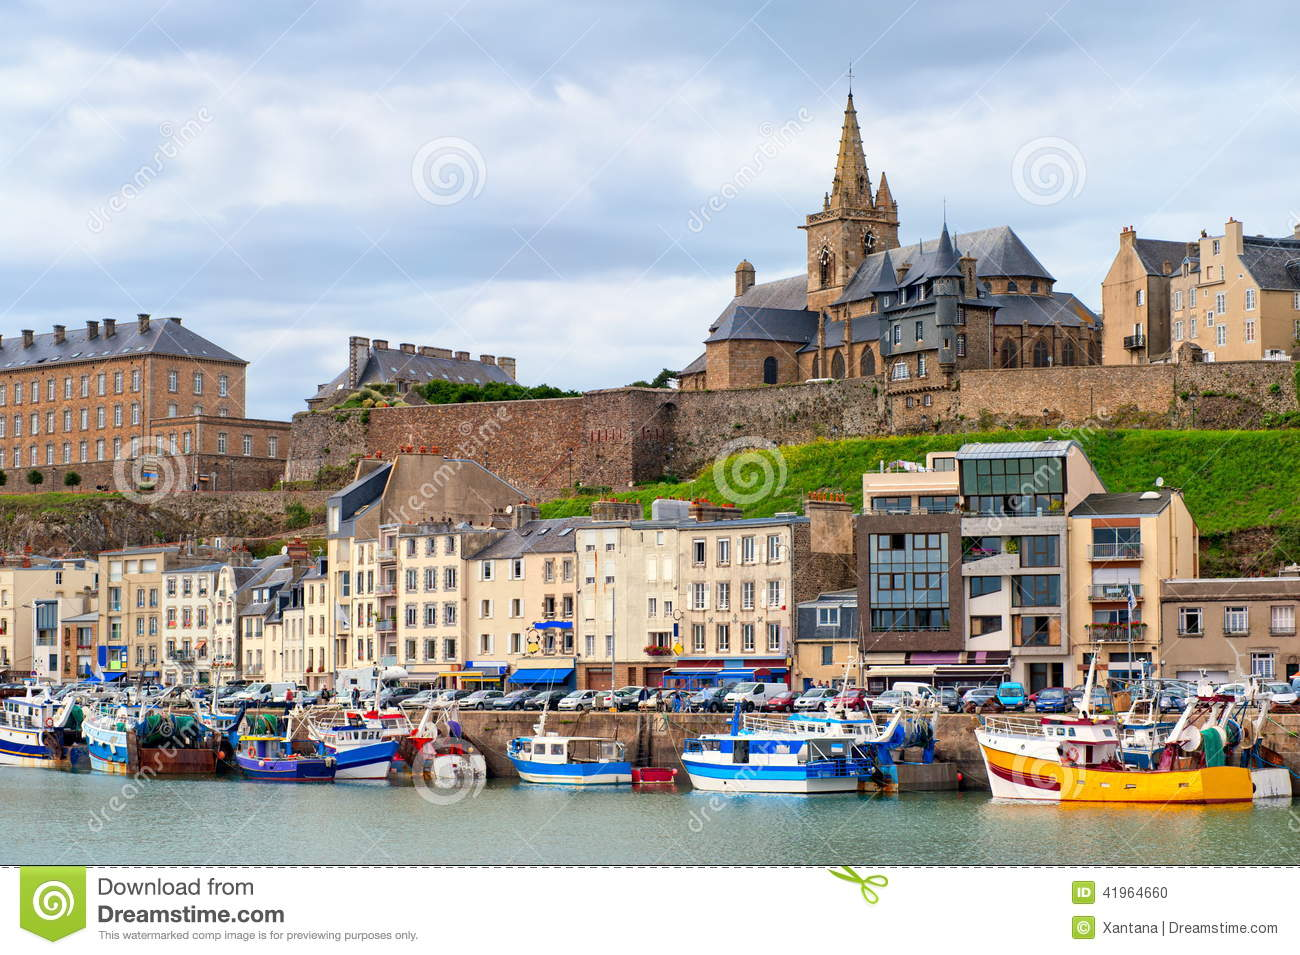 Granville, France stock photo. Image of ancient, beautiful - 41964660